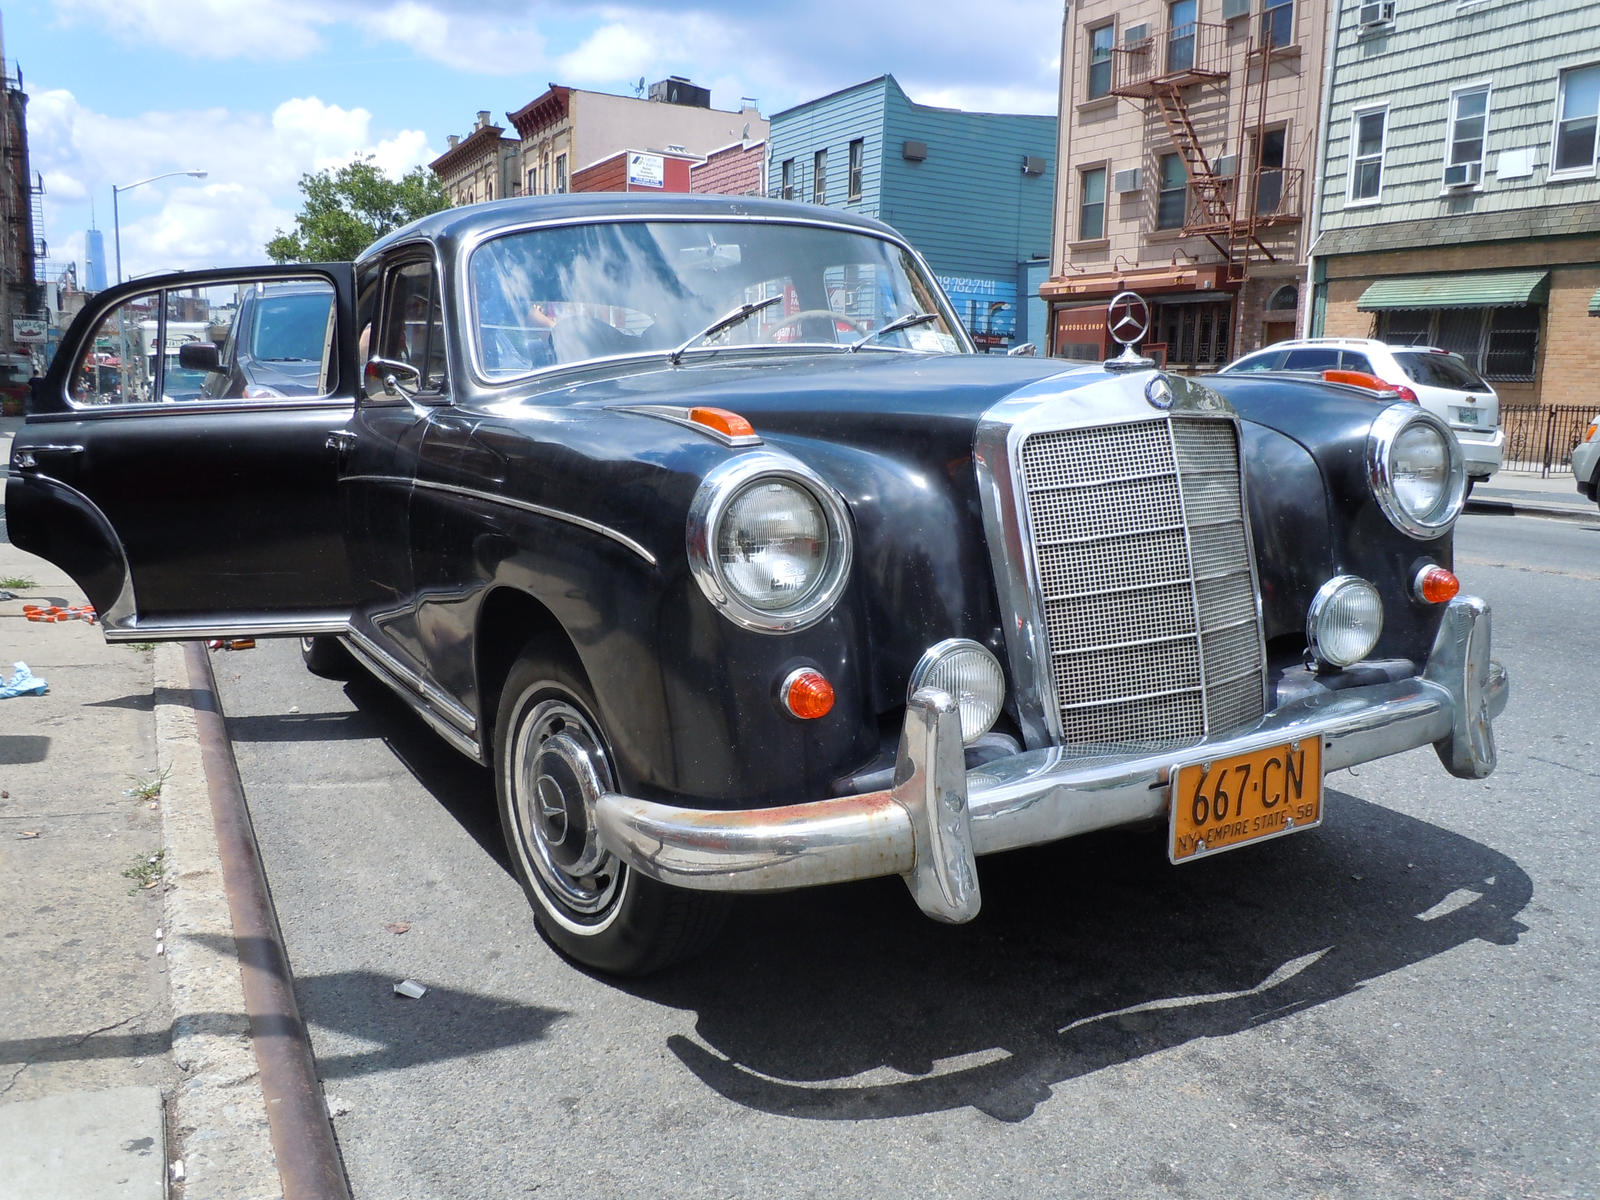 1958 mercedes benz 220s by brooklyn47 on deviantart for 1958 mercedes benz 220s for sale